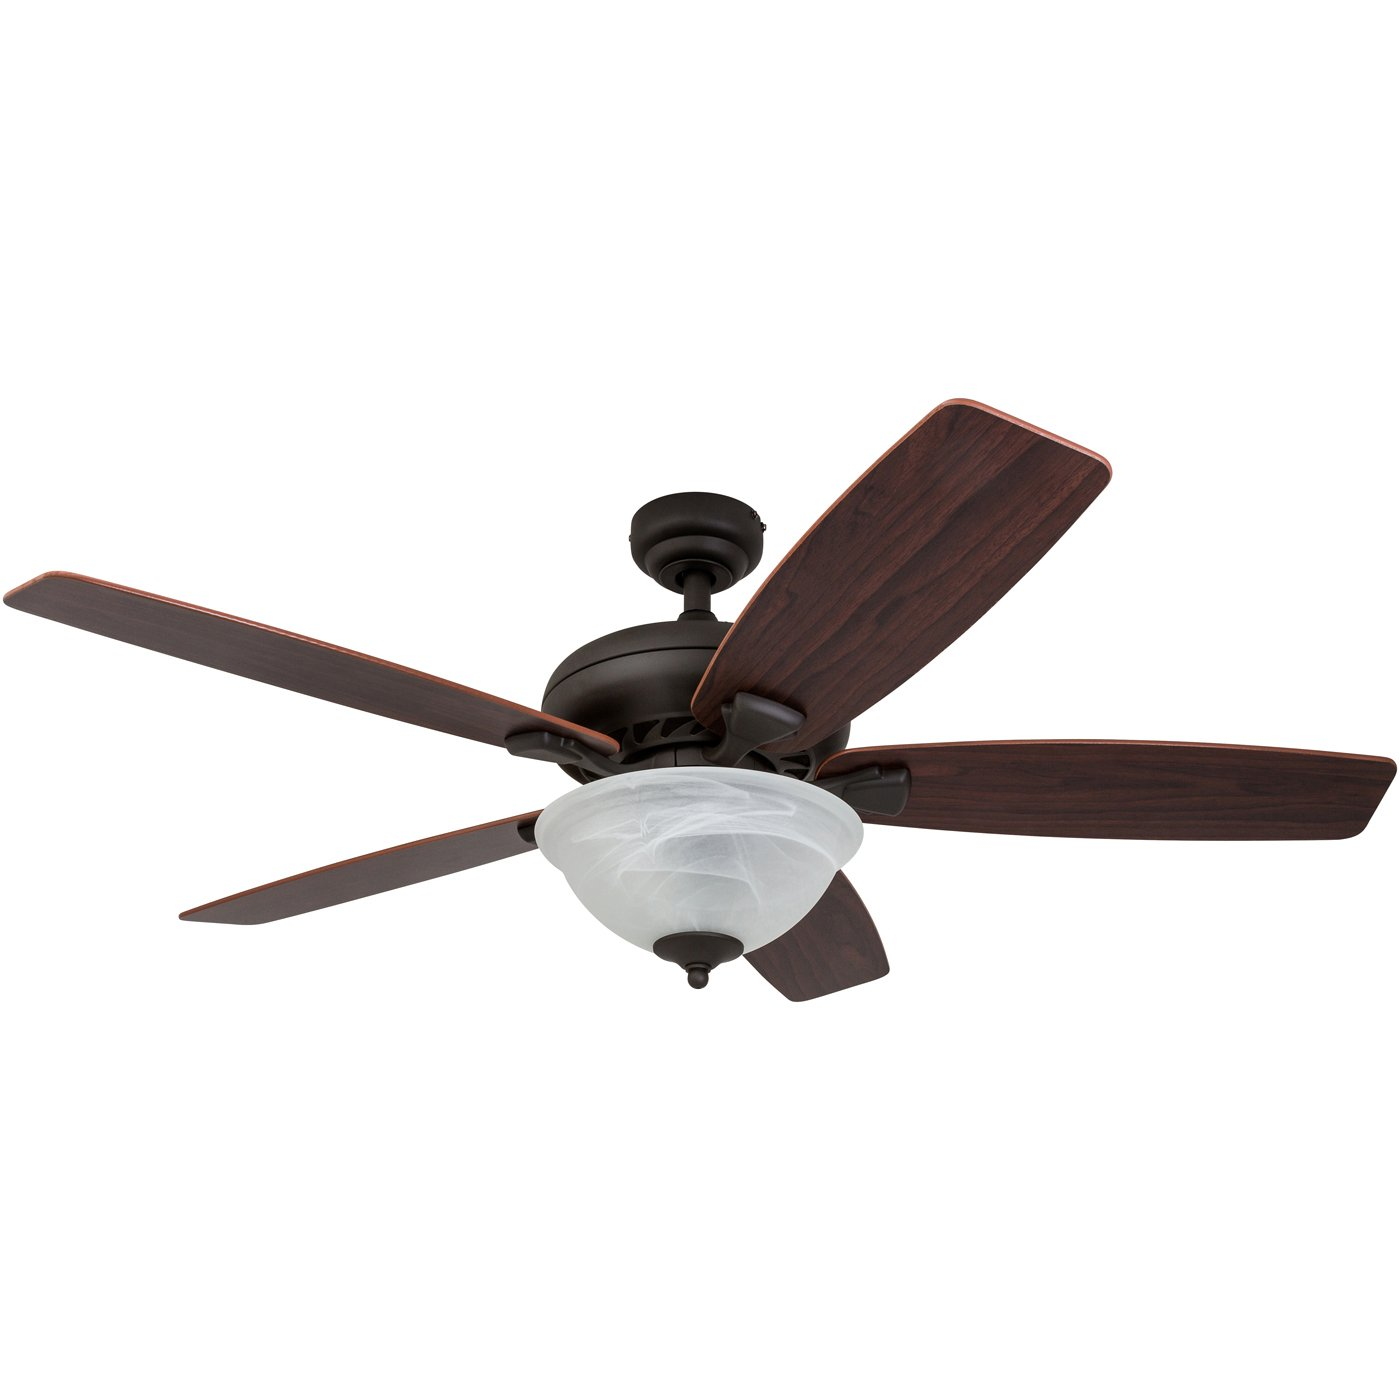 Prominence Home 52-inch Gatlinburg Indoor Ceiling Fan with Remote Control, Reversible Blades, Bronze (2017 Model)